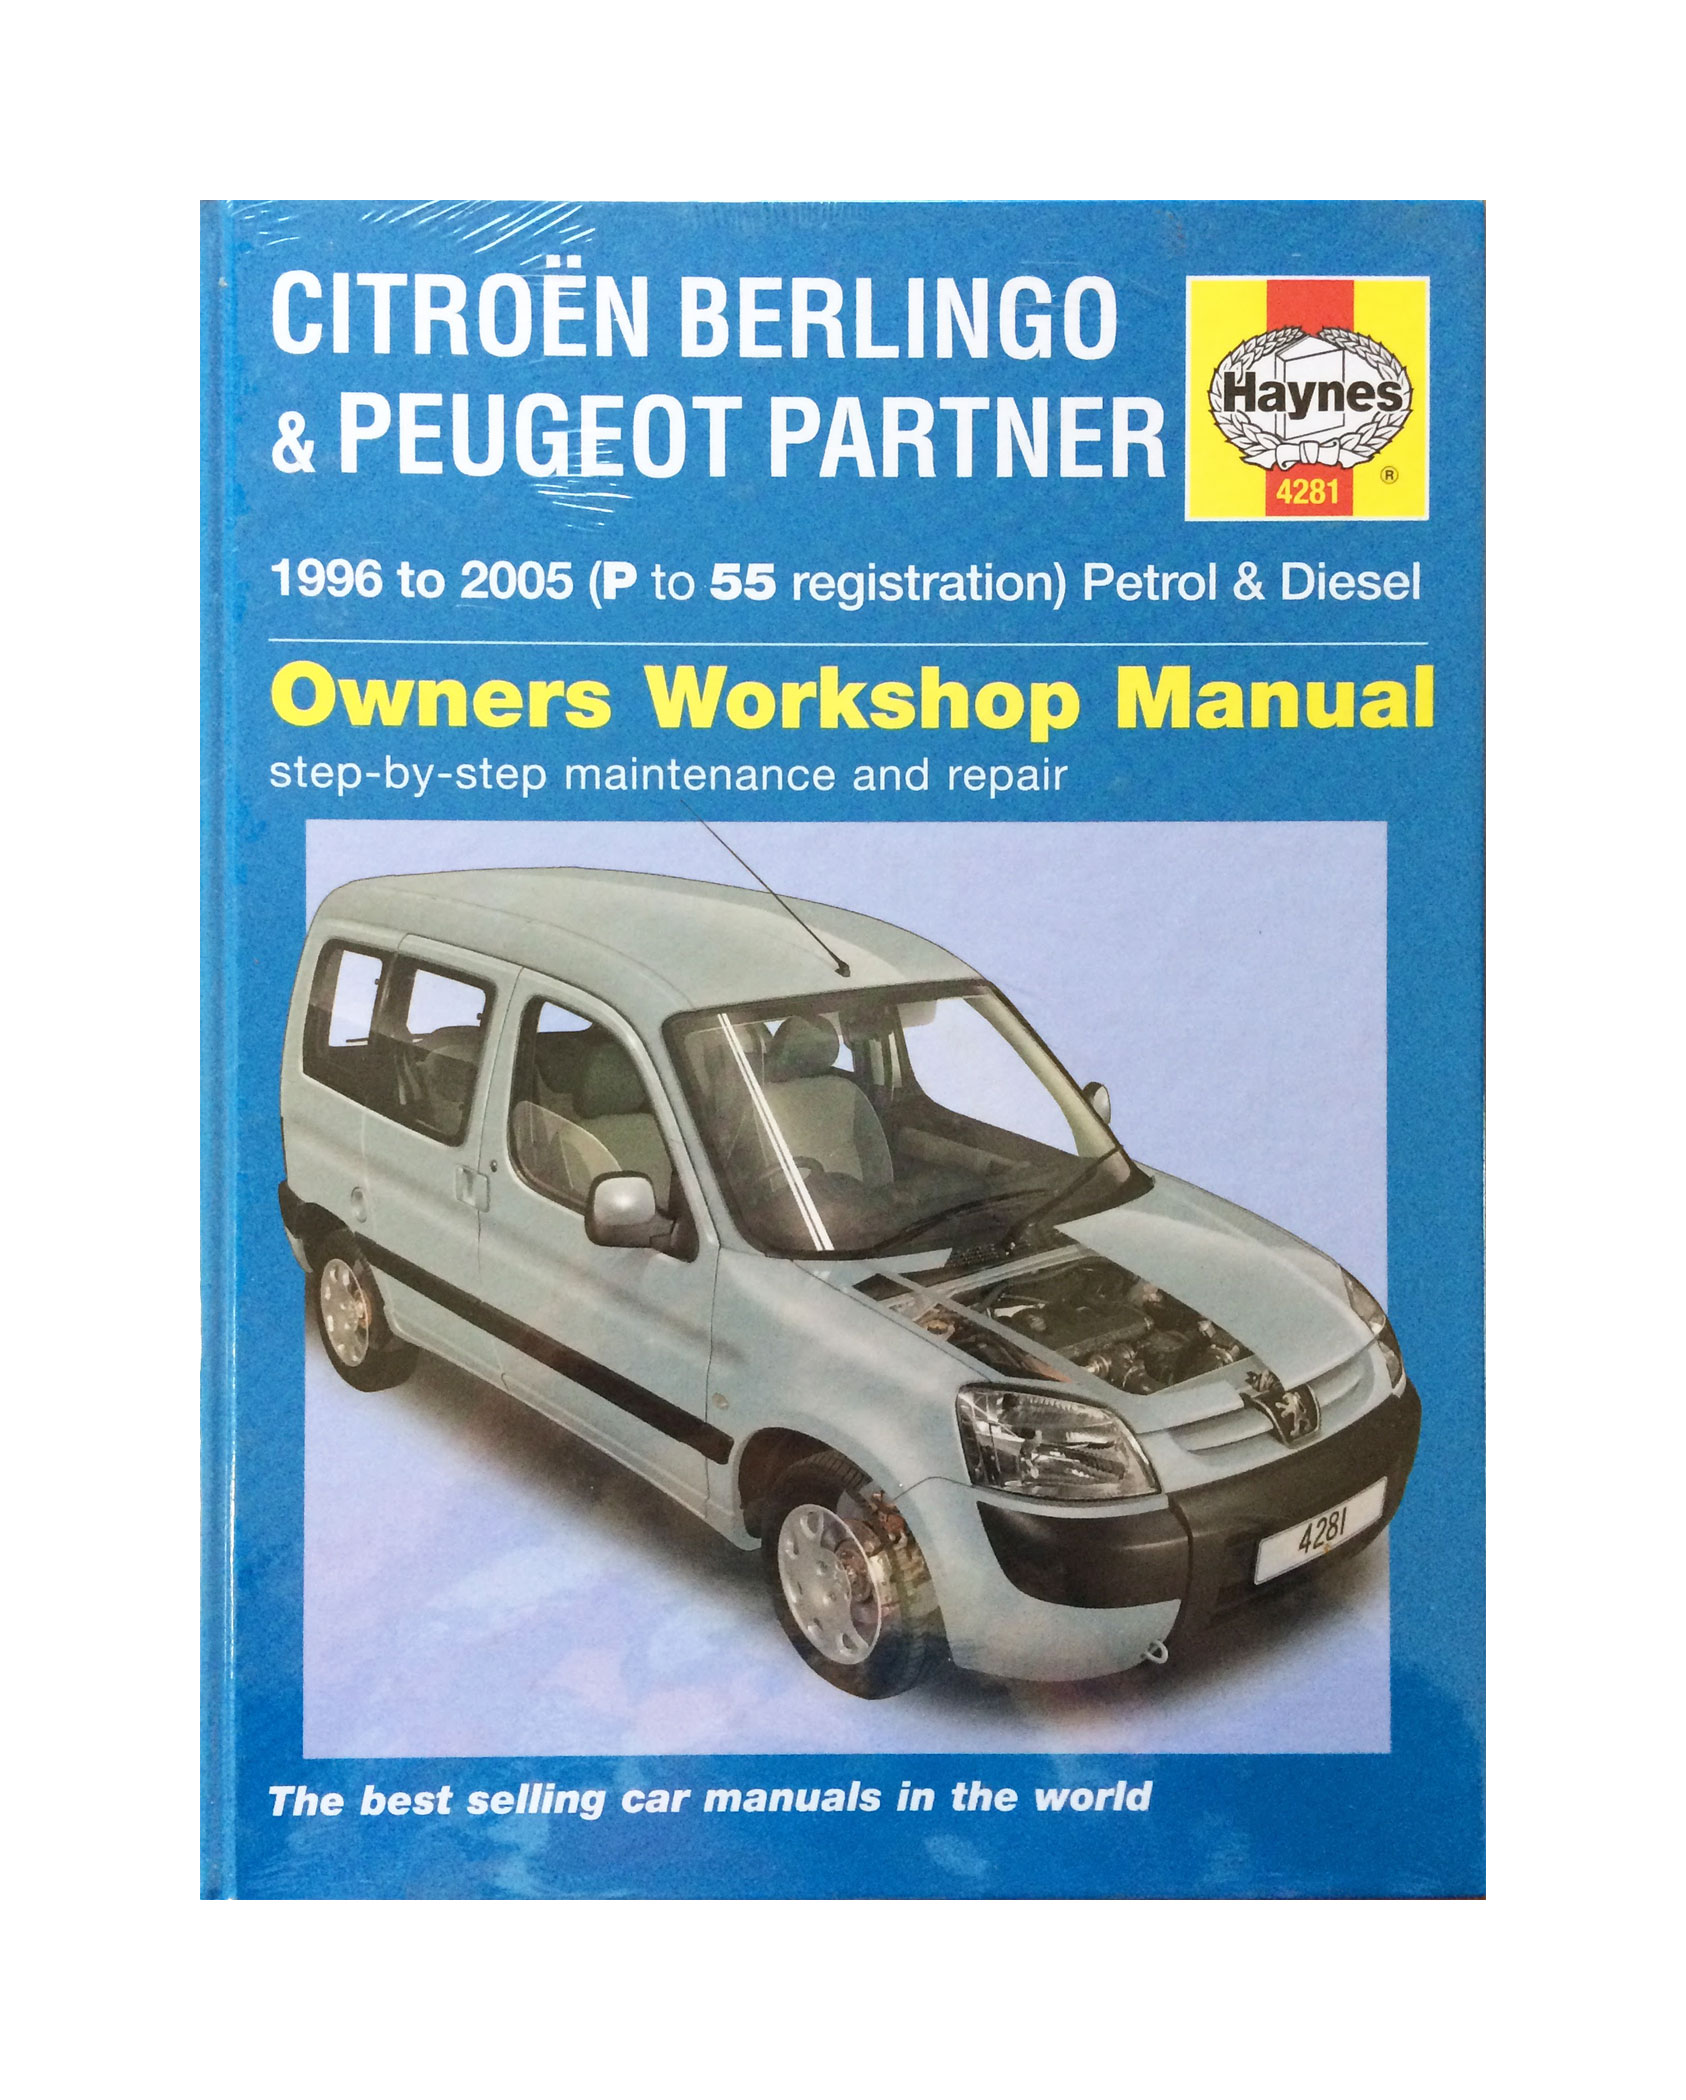 citroen berlingo peugeot partner owners workshop manual rh molliesclassics com Citroen Berlingo 1.6 Citroen Berlingo Van 2017